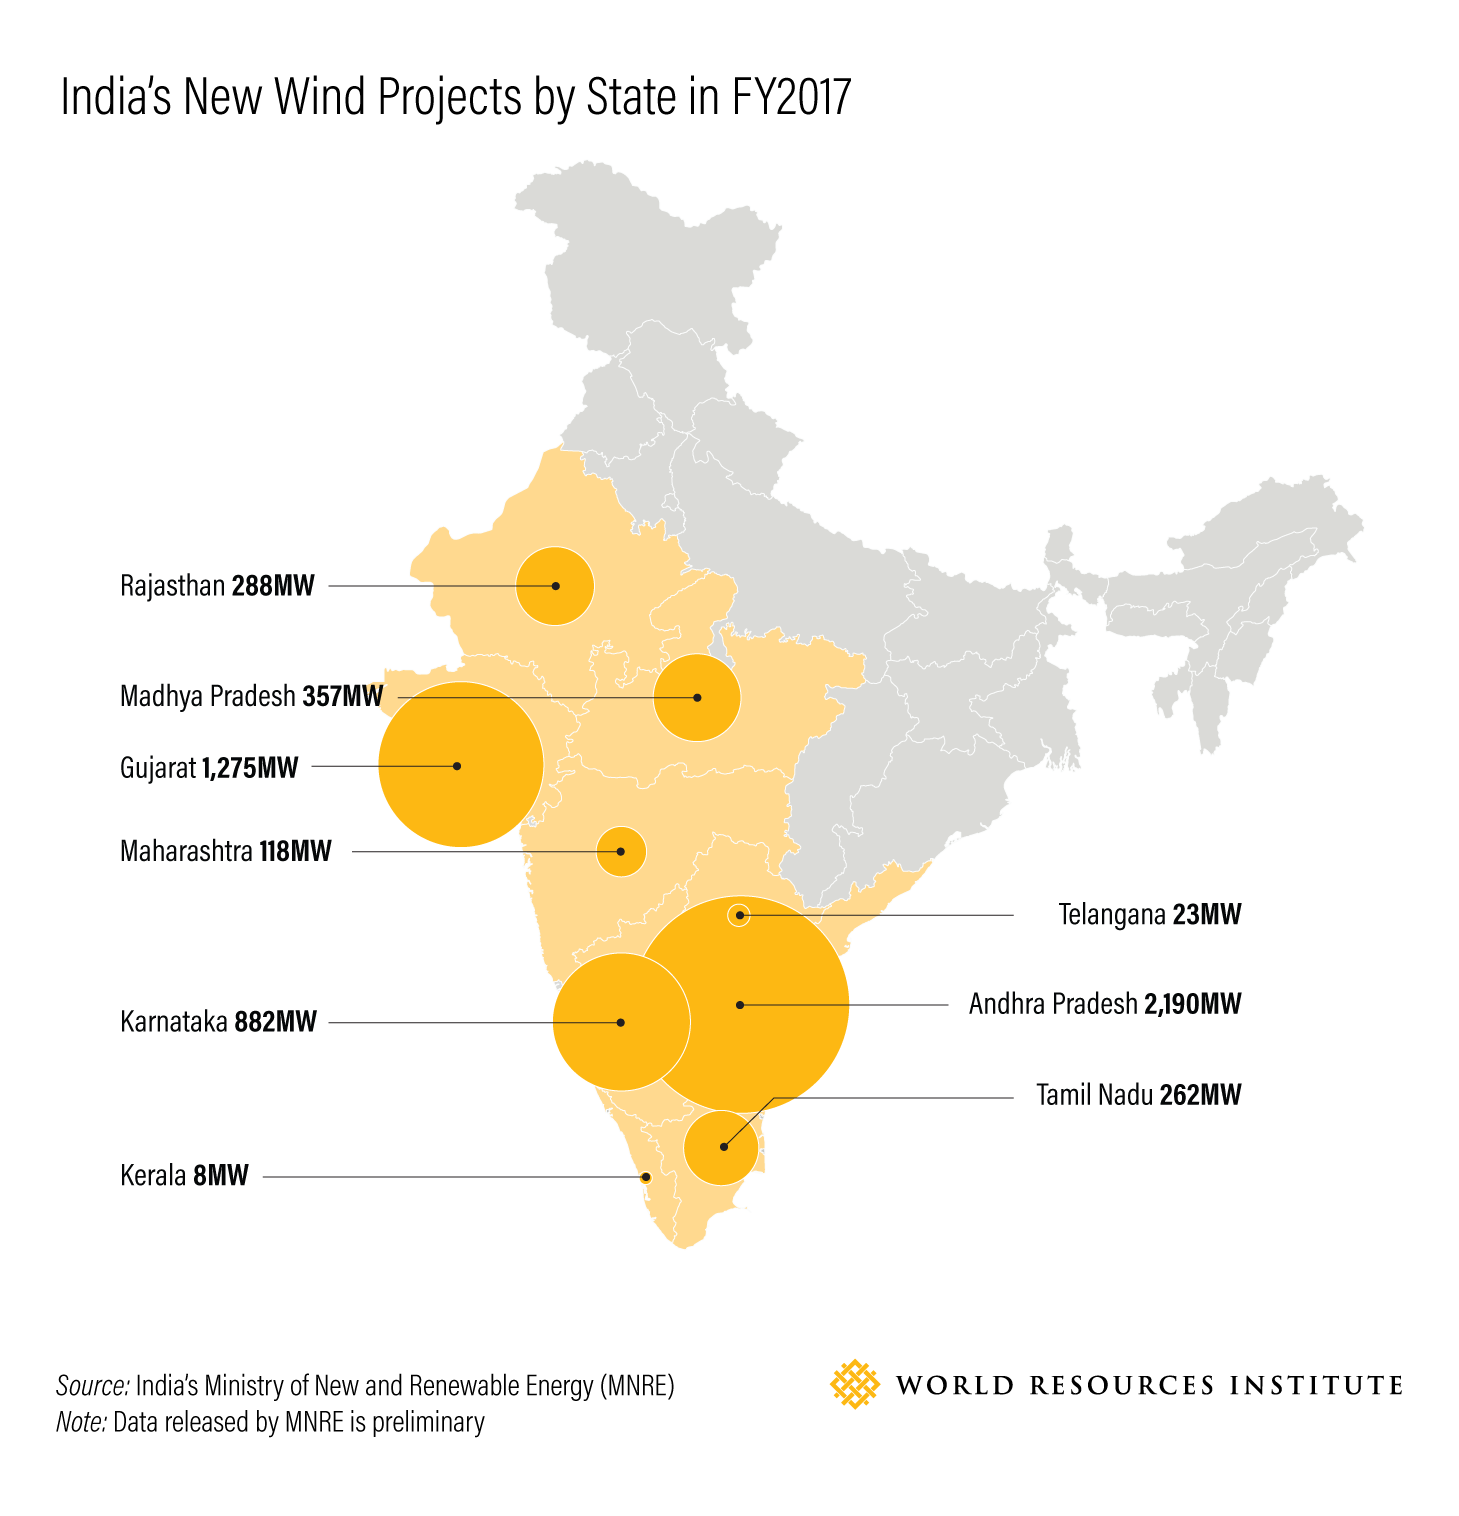 Indias_New_Wind_Projects_by_State_in_FY2017-01